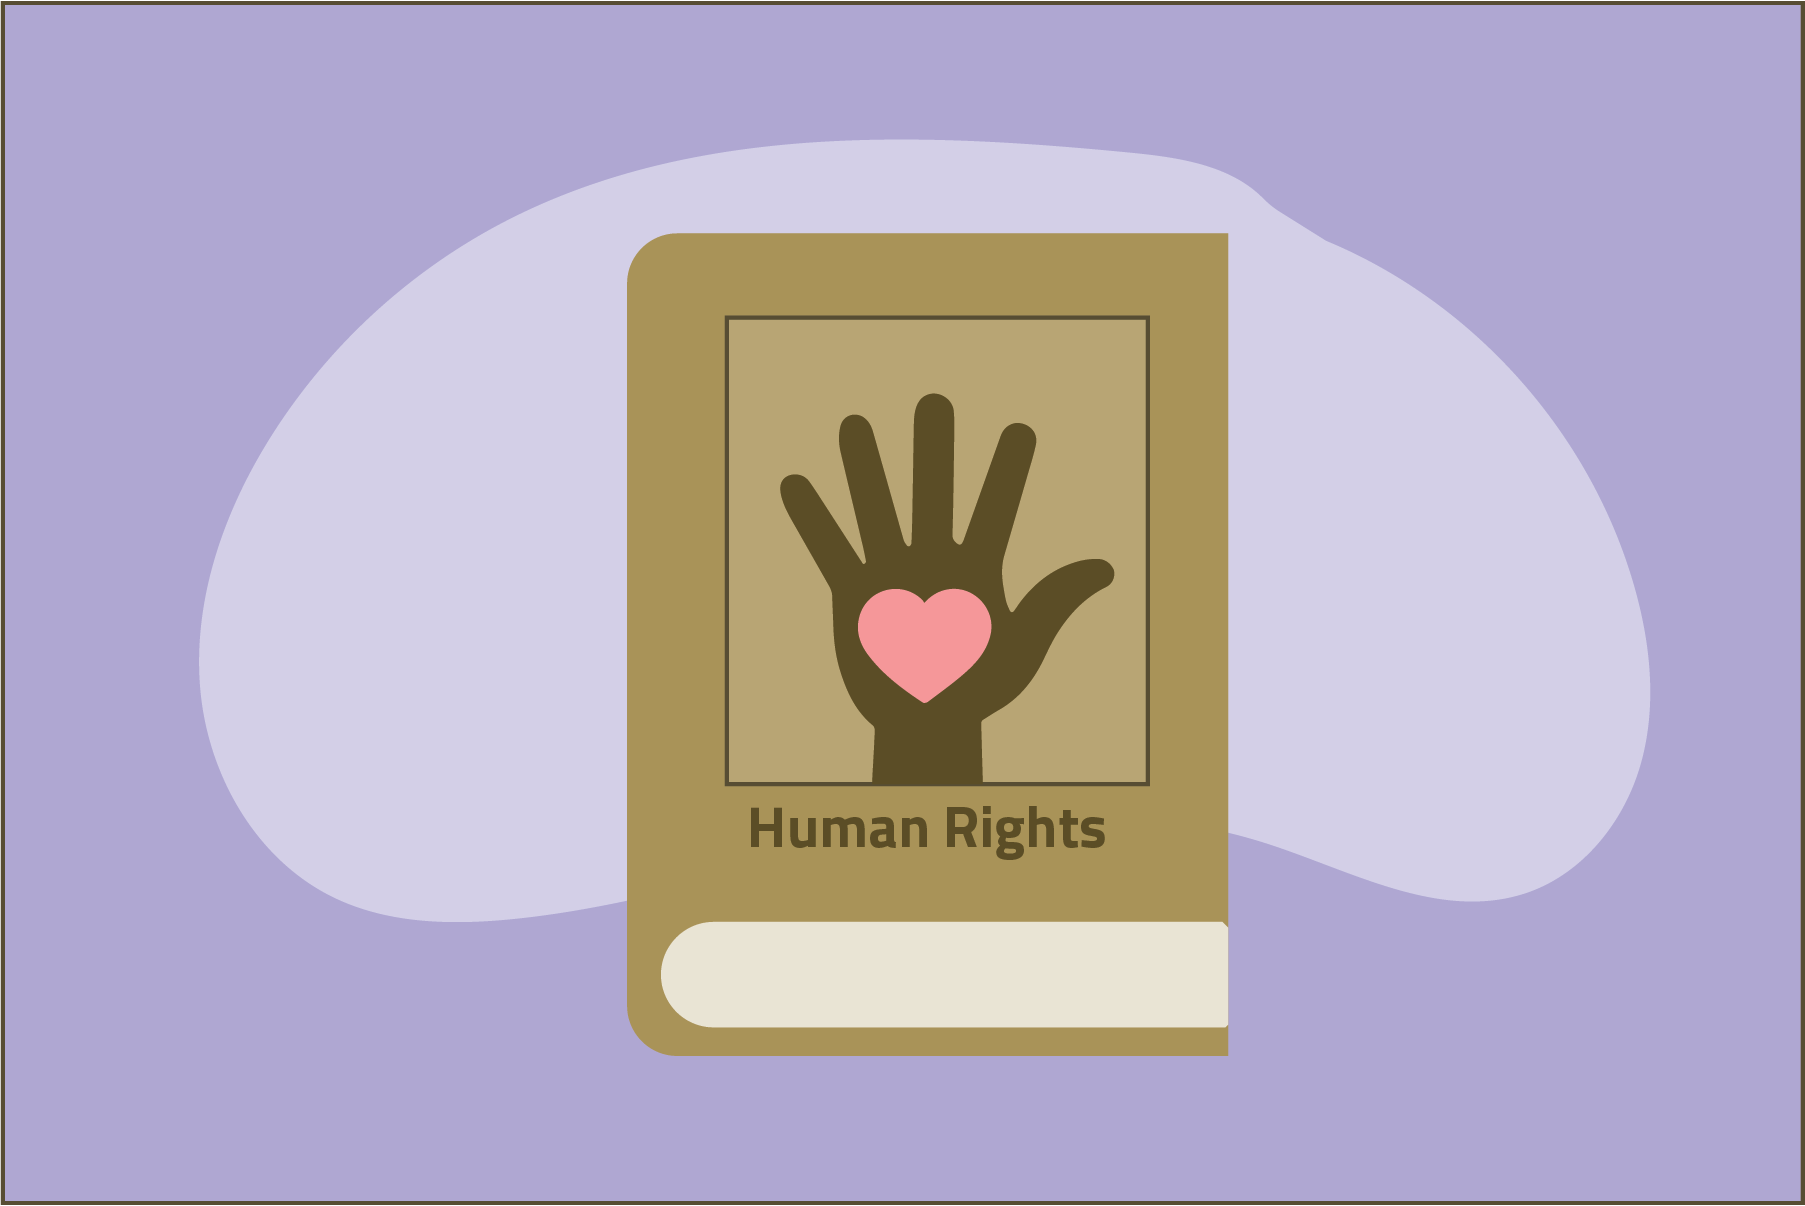 Human rights curriculum is necessary